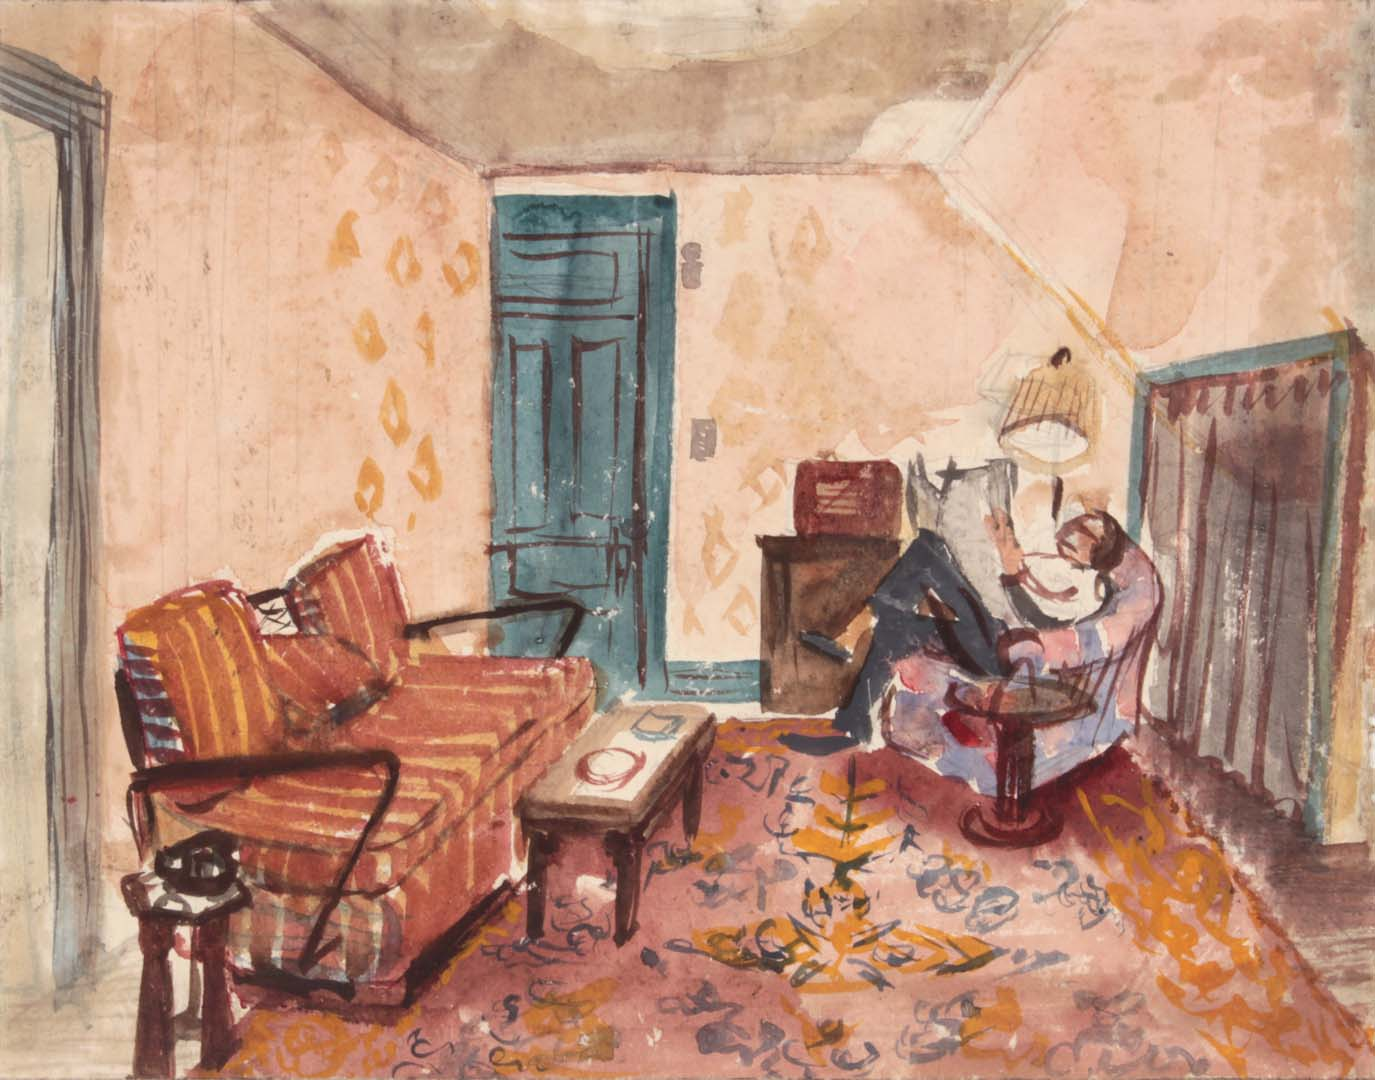 1949 NT (Dwelling Spaces Living Room 2 Green Door) Casein and Graphite on Paper 8.50 x 10.625